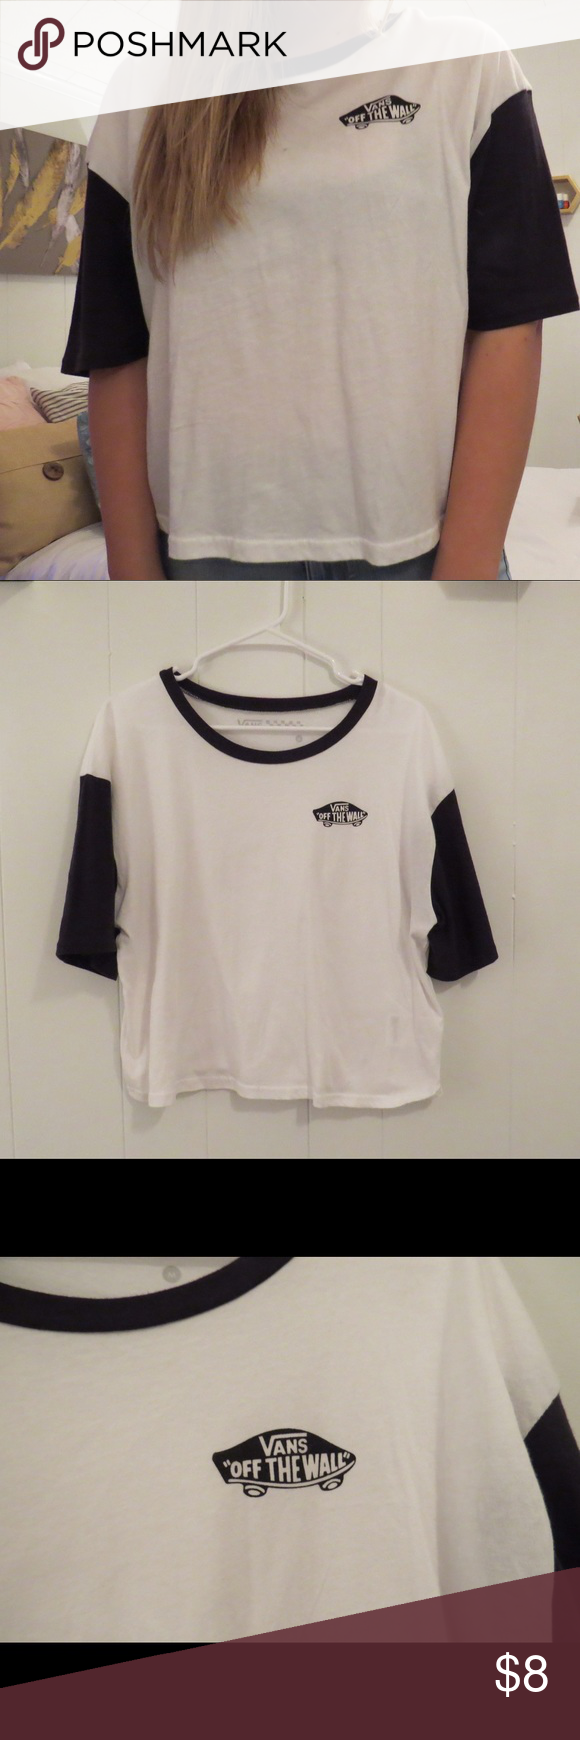 Vans oversized crop top! Vans oversized crop top, size medium, purchased at PacSun, never worn! 💗feel free to ask any questions! 💗open to offers! Vans Tops Crop Tops